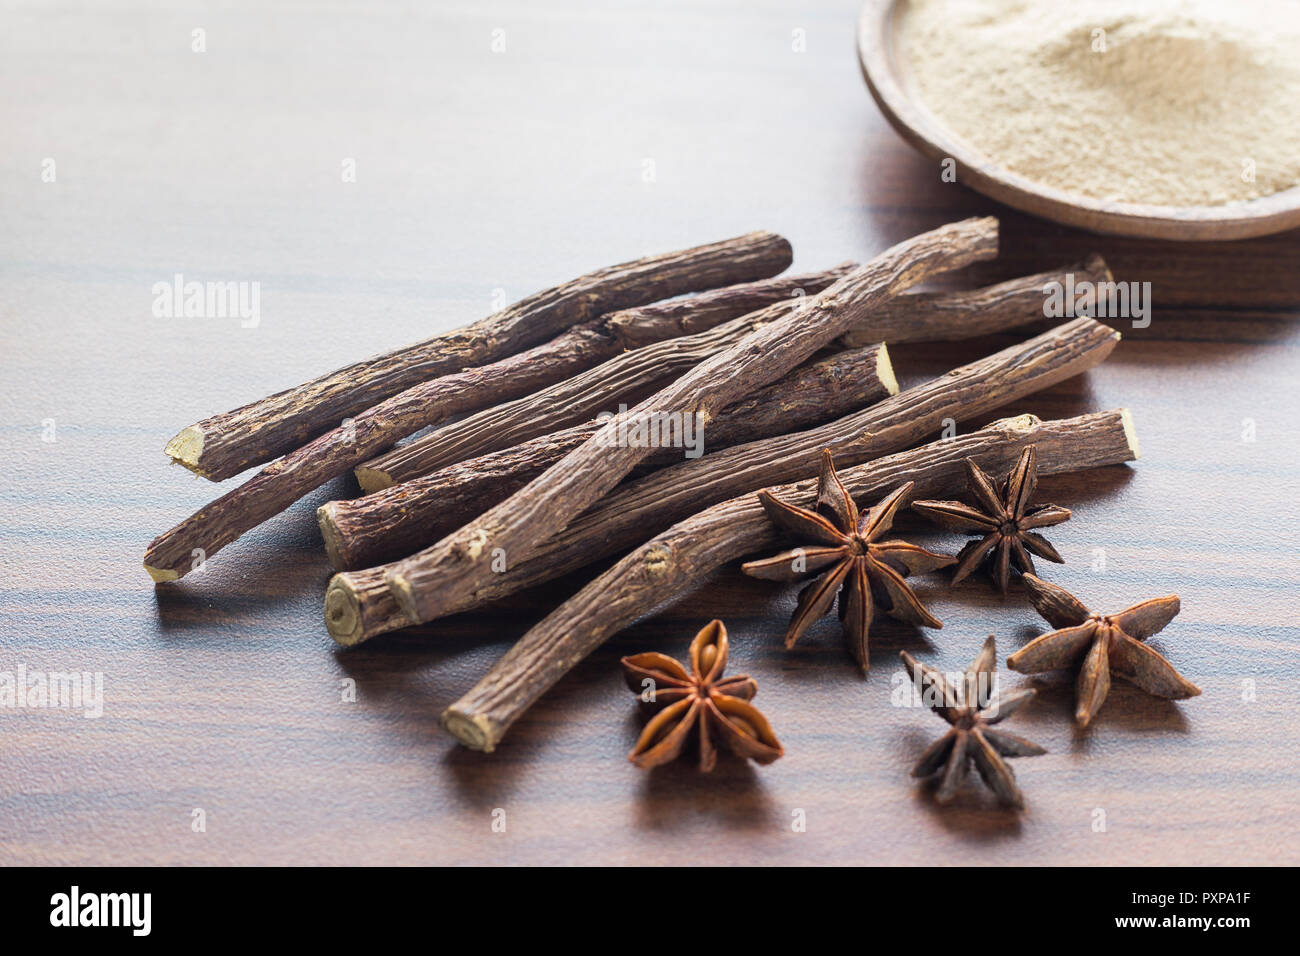 licorice root and anise on the table - Glycyrrhiza glabra. - Stock Image